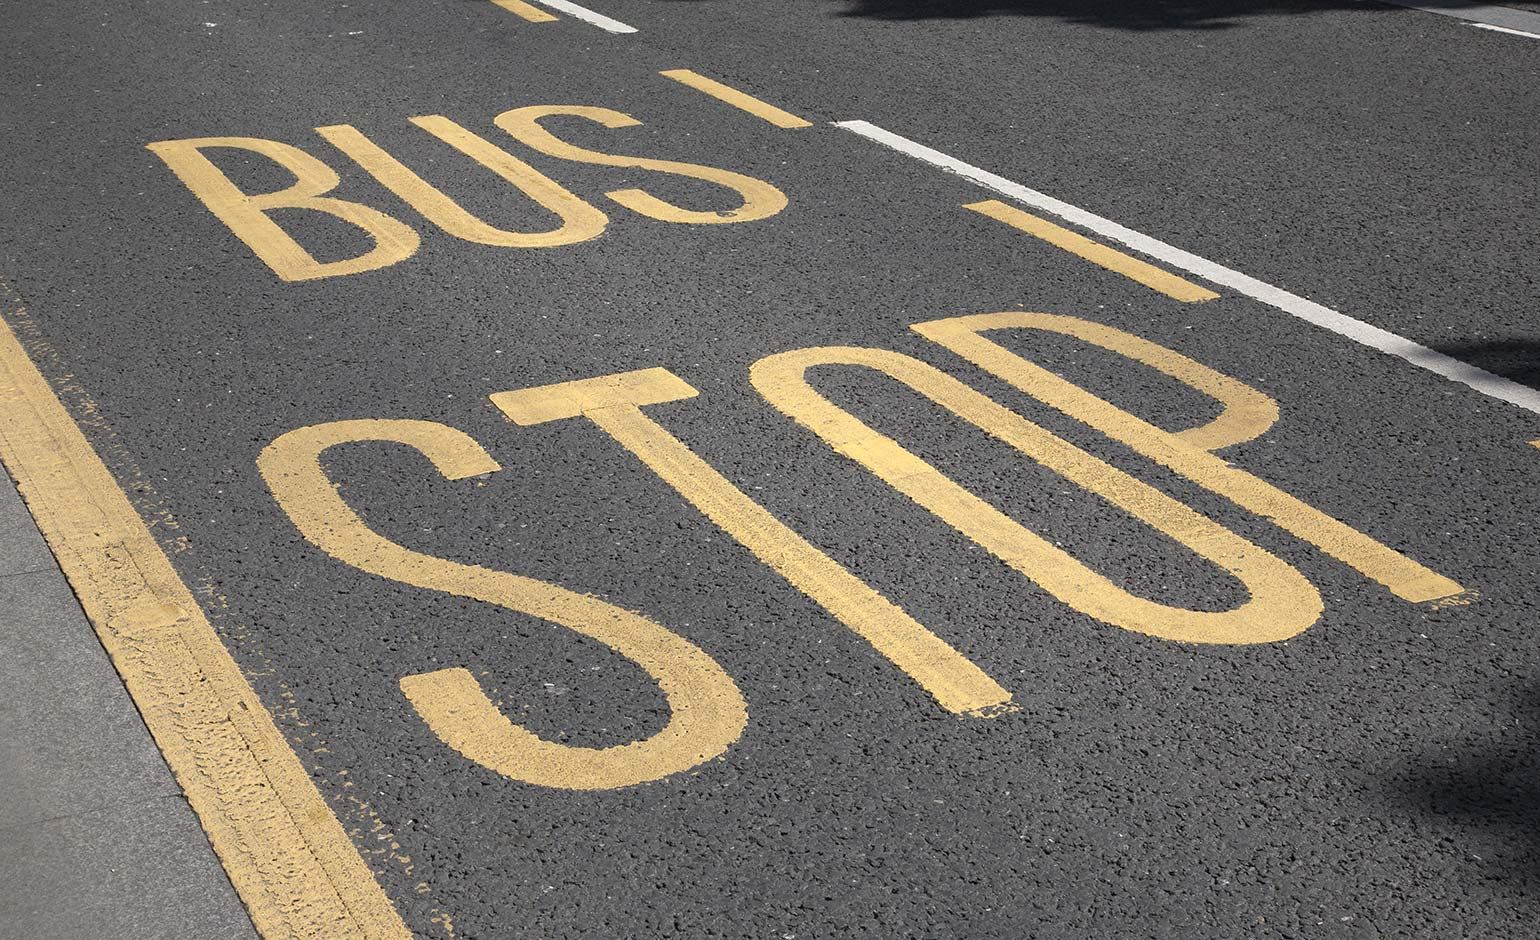 Additional alterations announced for First Bus services operating across Bath